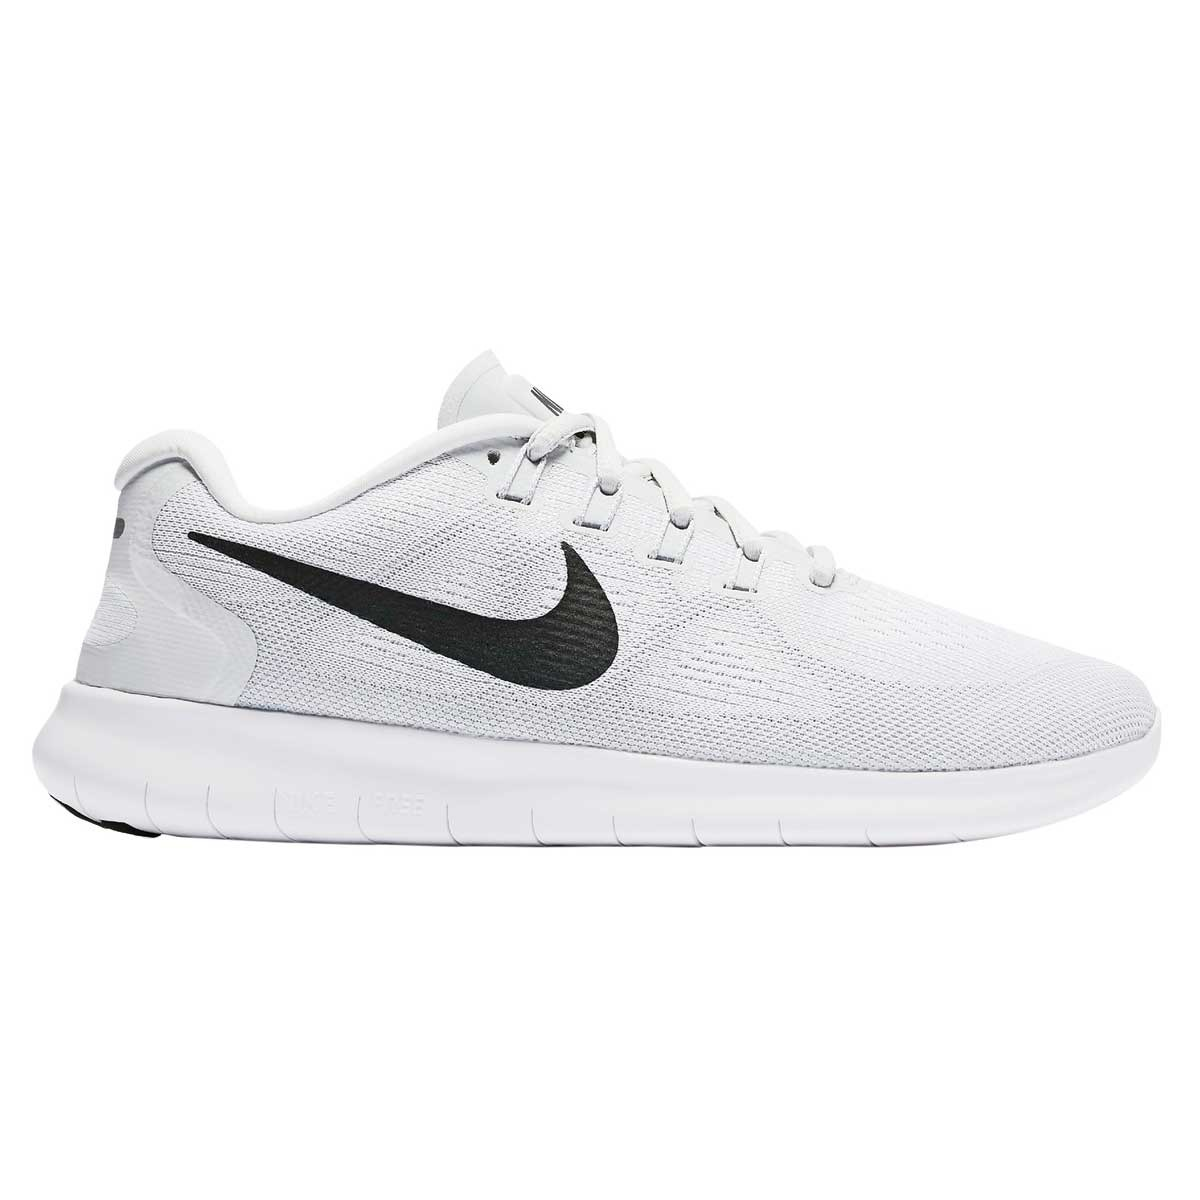 big sale 2c9a8 2be1e Nike Free Rn 2017 : Buy Nike Shoes & Sneakers ...